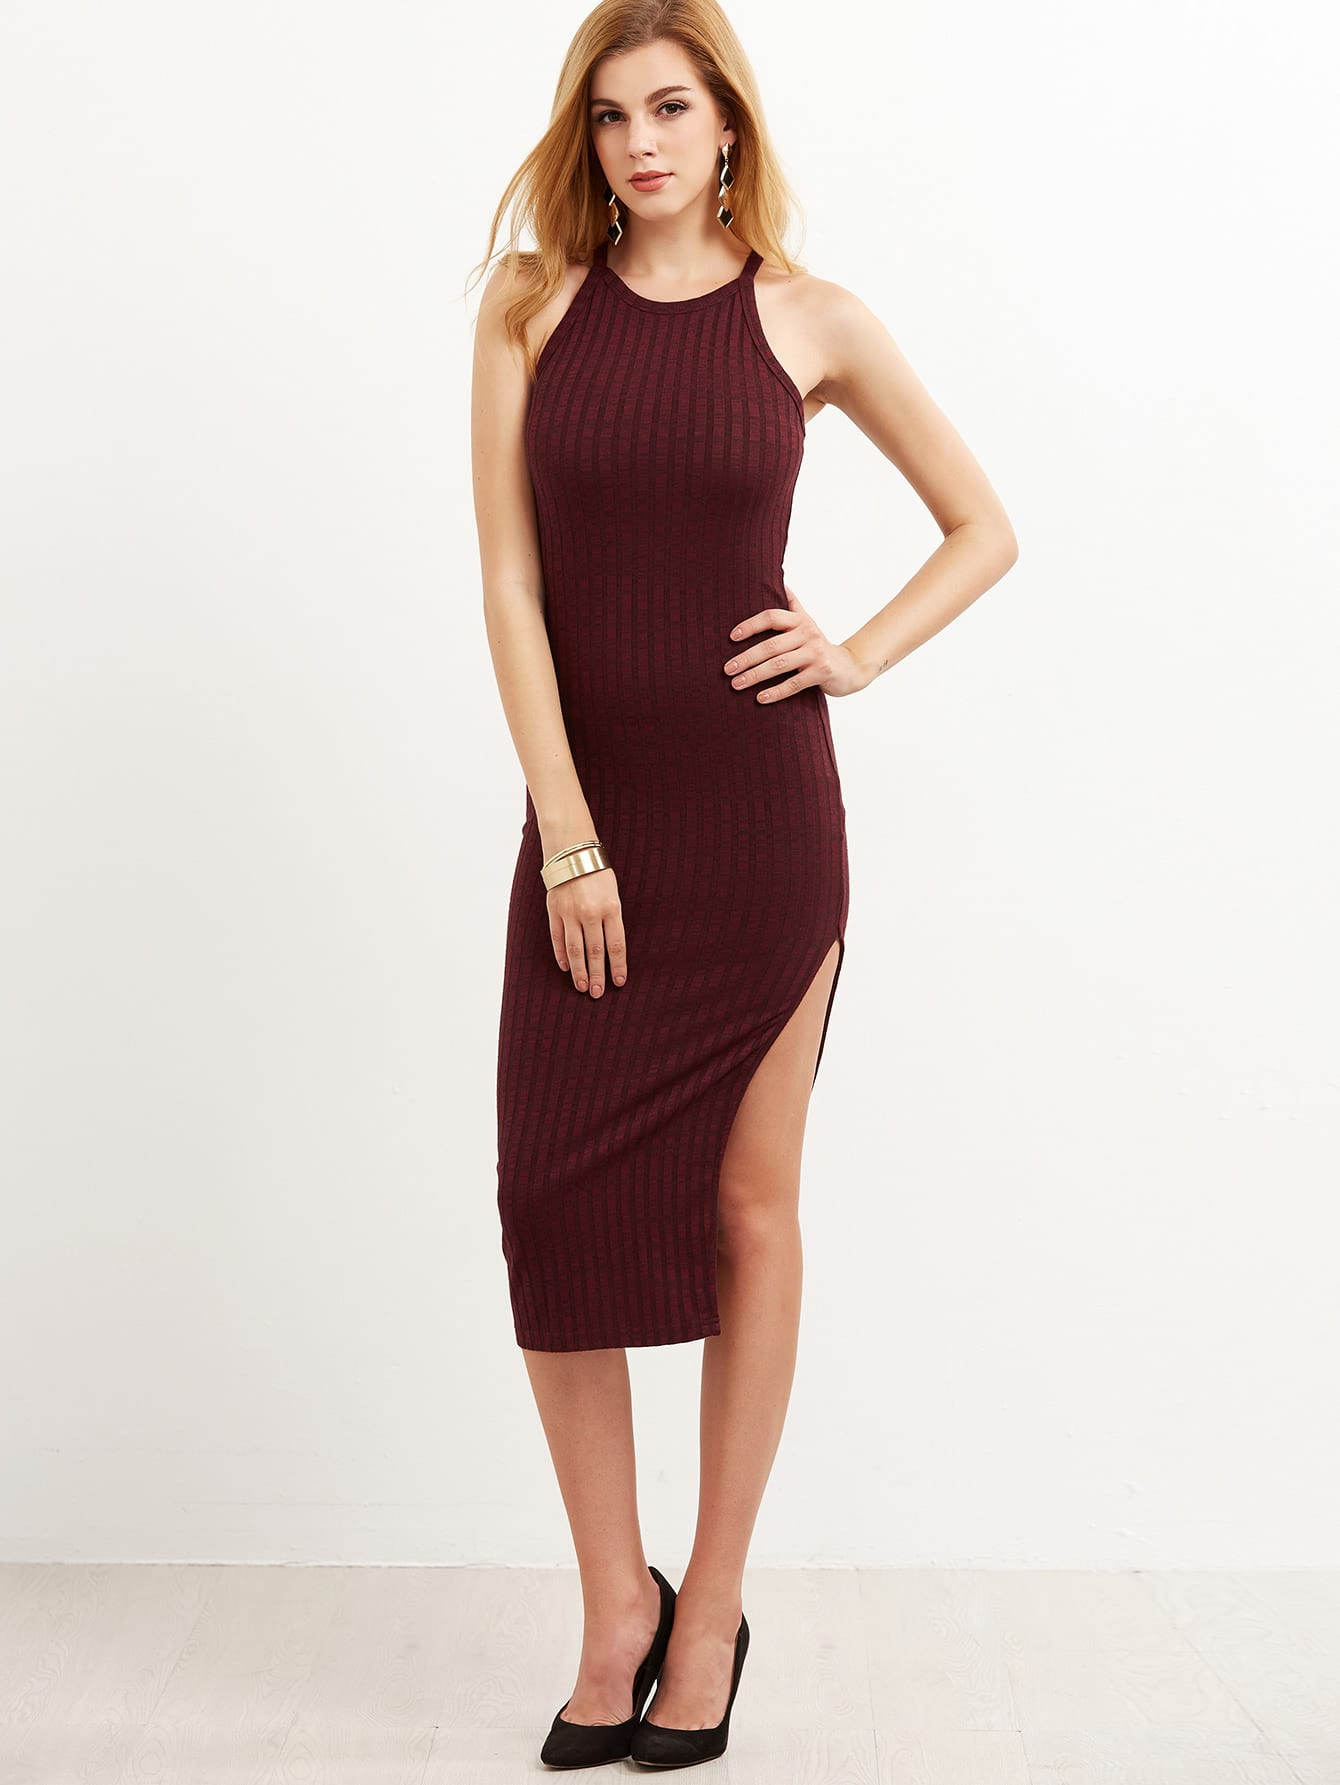 Burgundy Side Slit Ribbed Cami Dress dress161109707